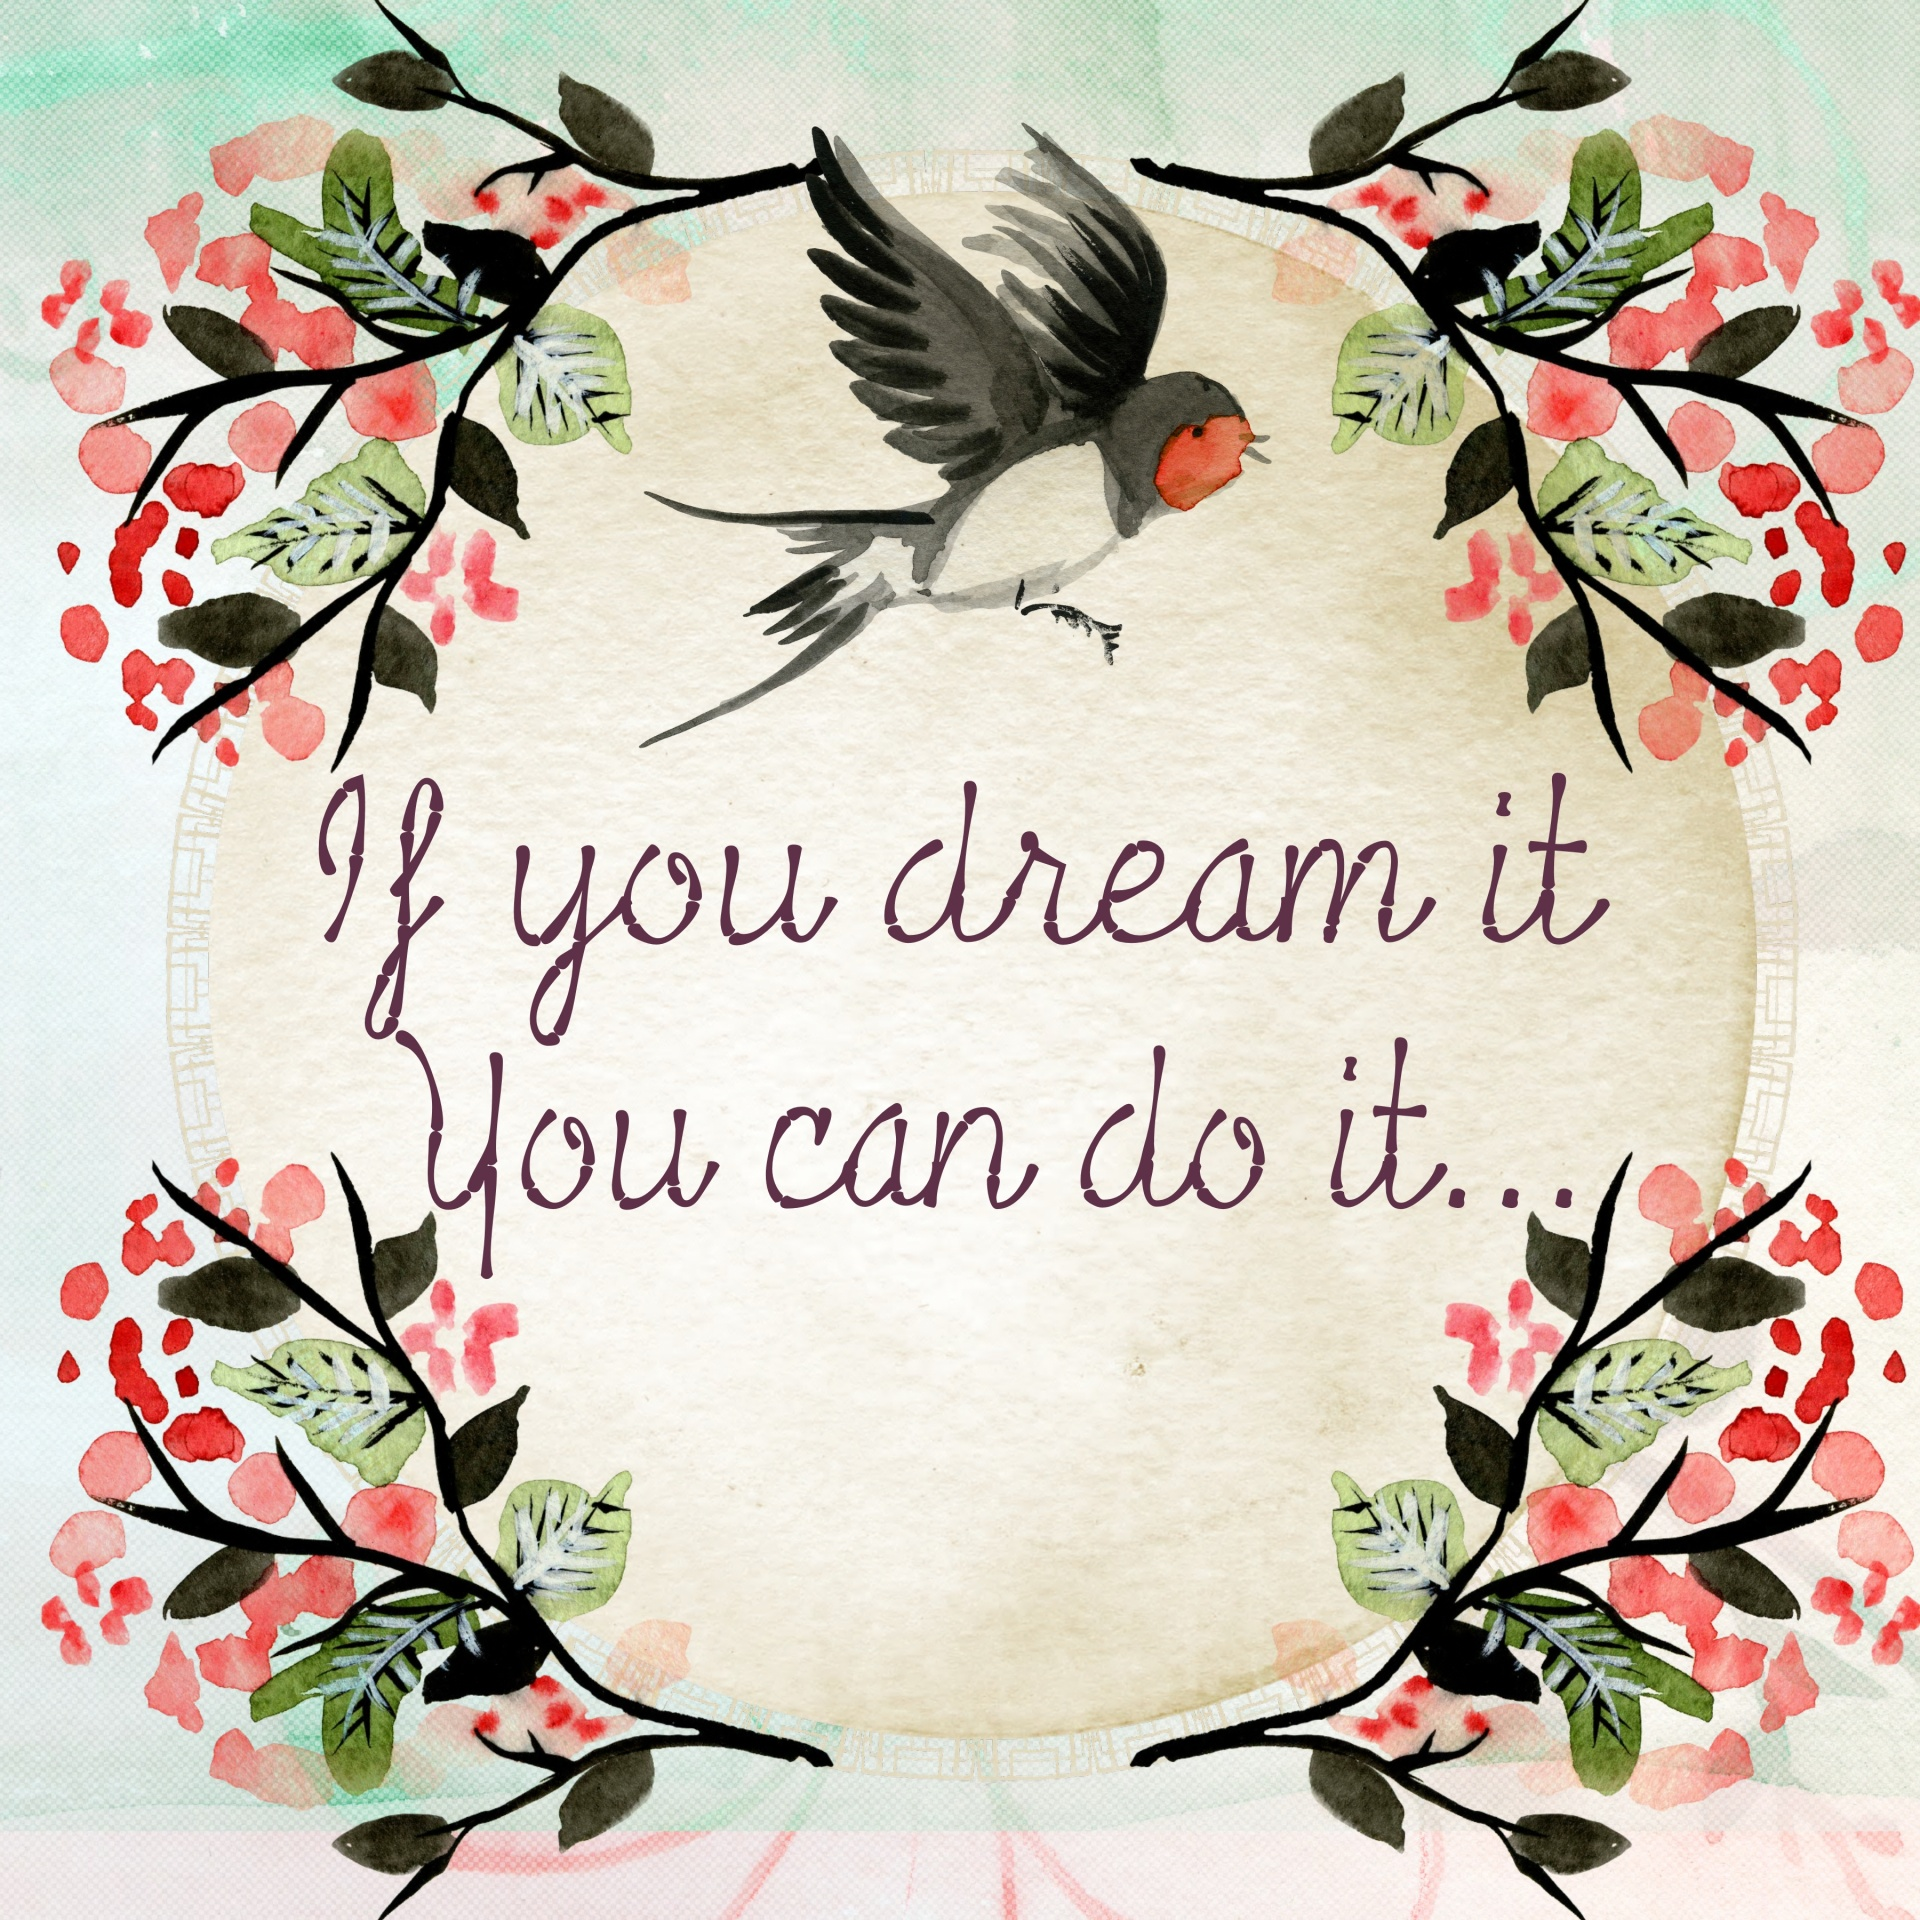 quote-dreams-calligraphy-message